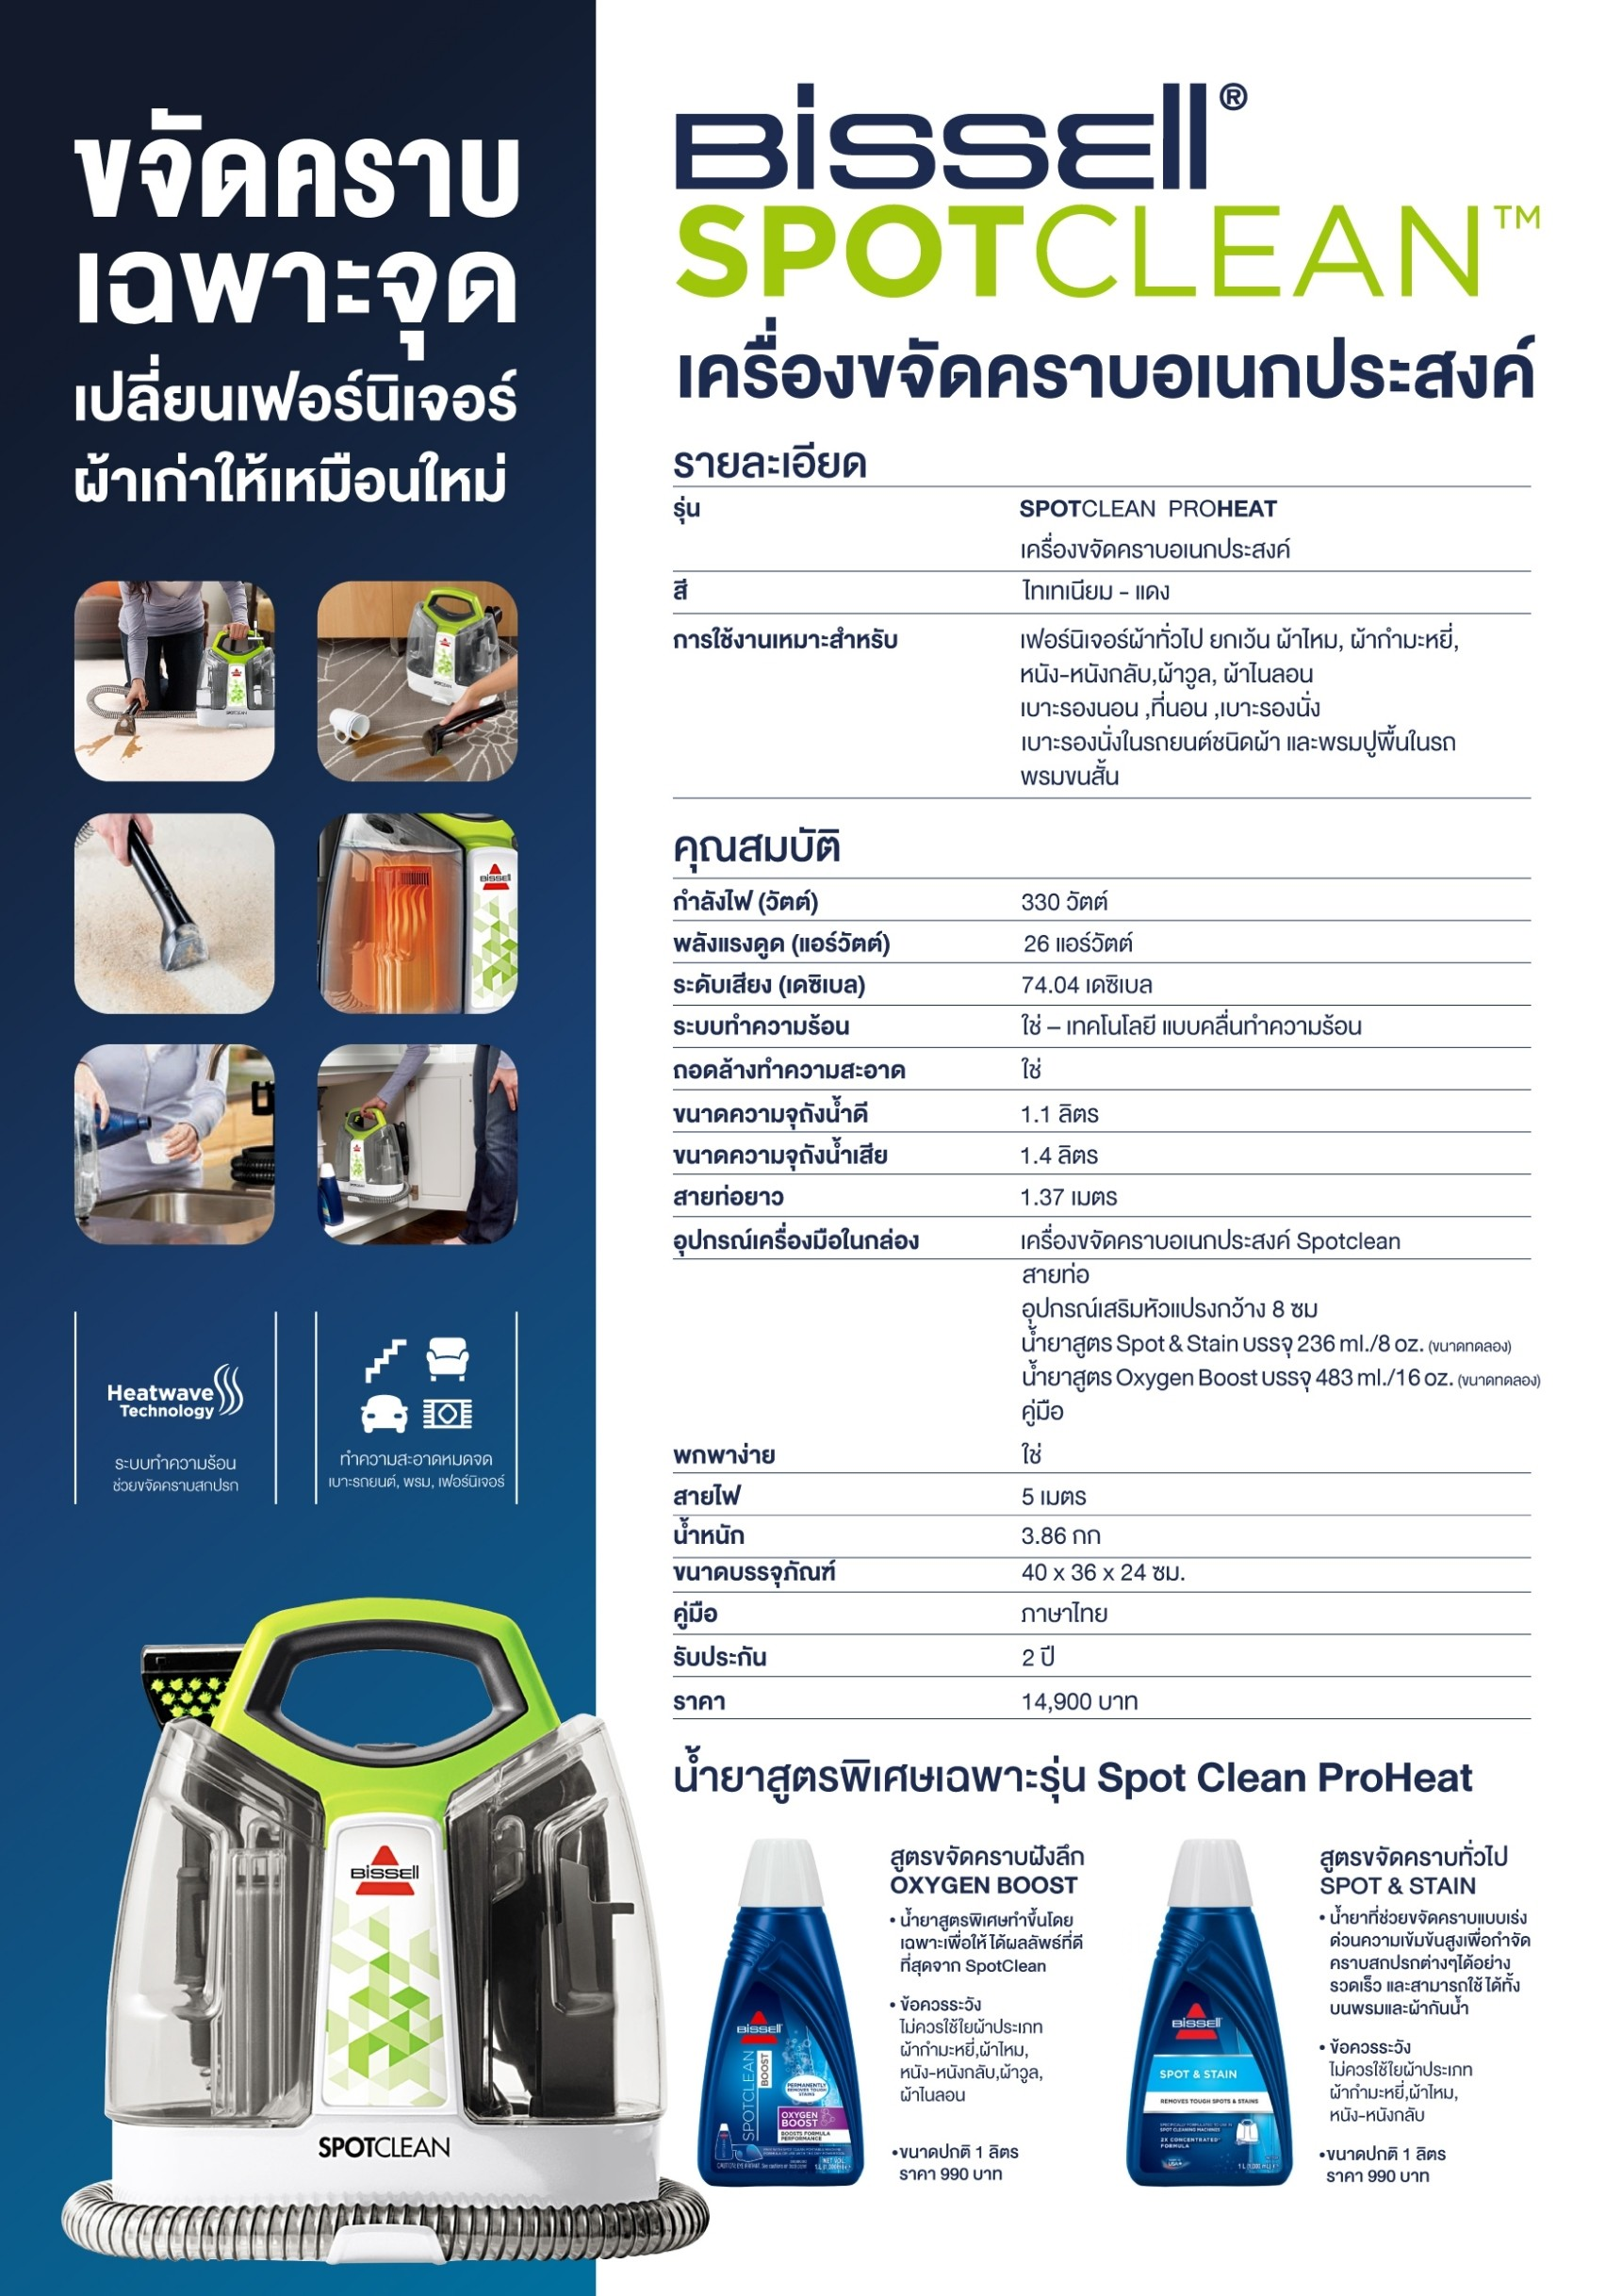 brochure_spotcleanproheat_bissell_th.jpg